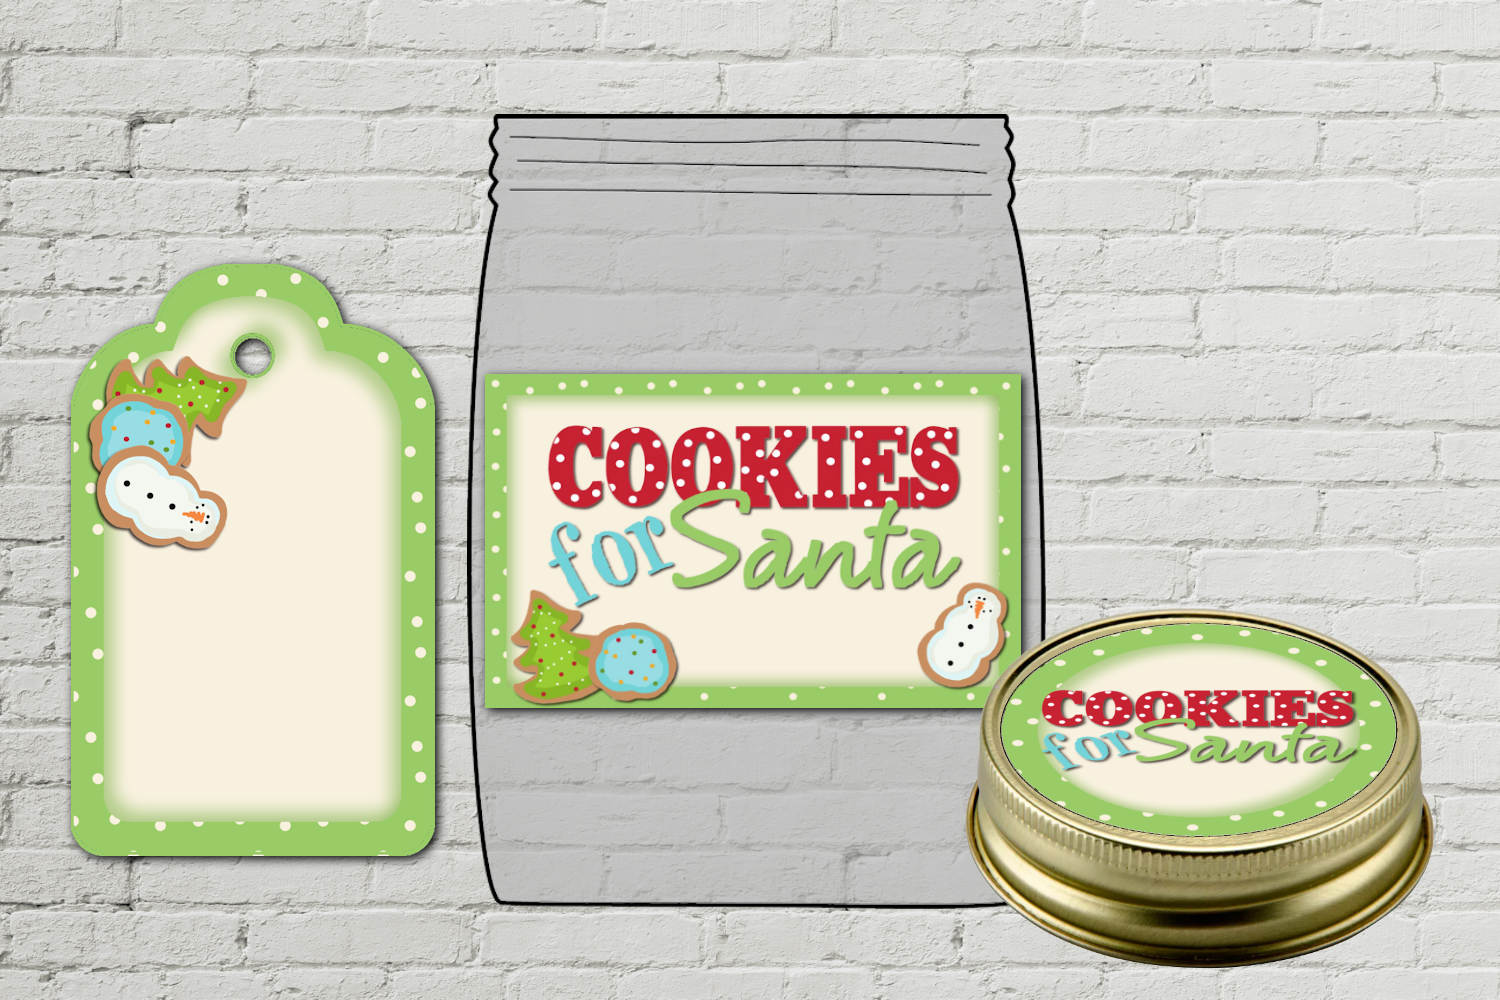 Cookies for Santa Jar Labels and Tag example image 2